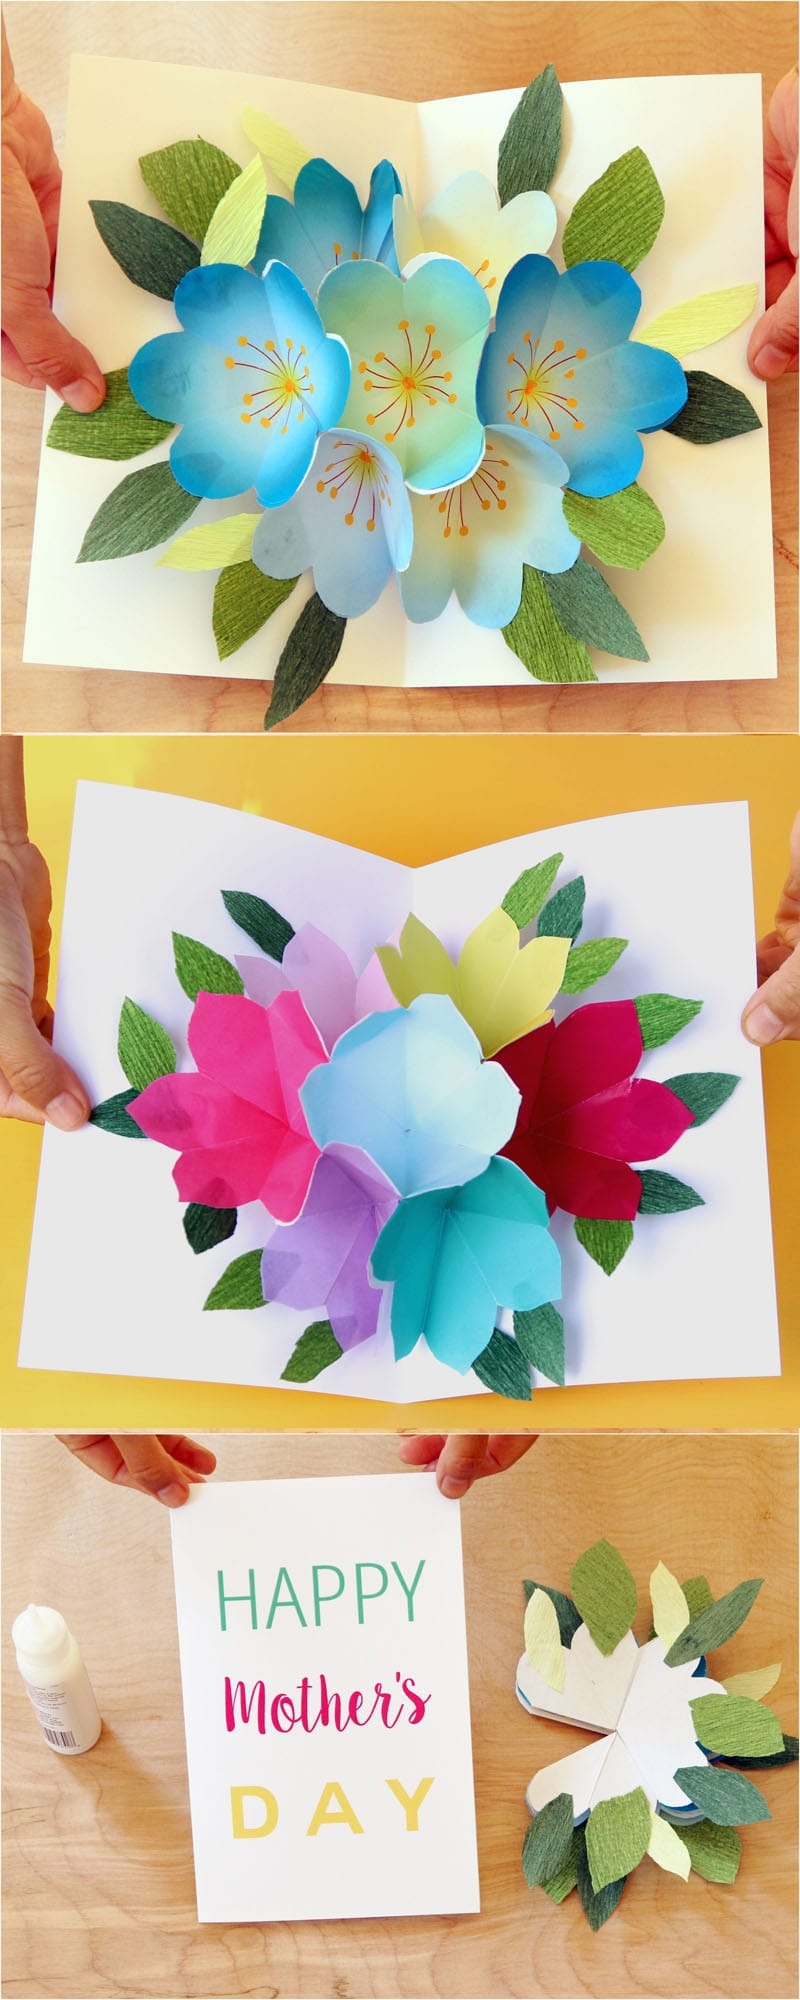 Pop Up Flowers Diy Printable Mother's Day Card - A Piece Of Rainbow - Free Printable Pop Up Birthday Card Templates